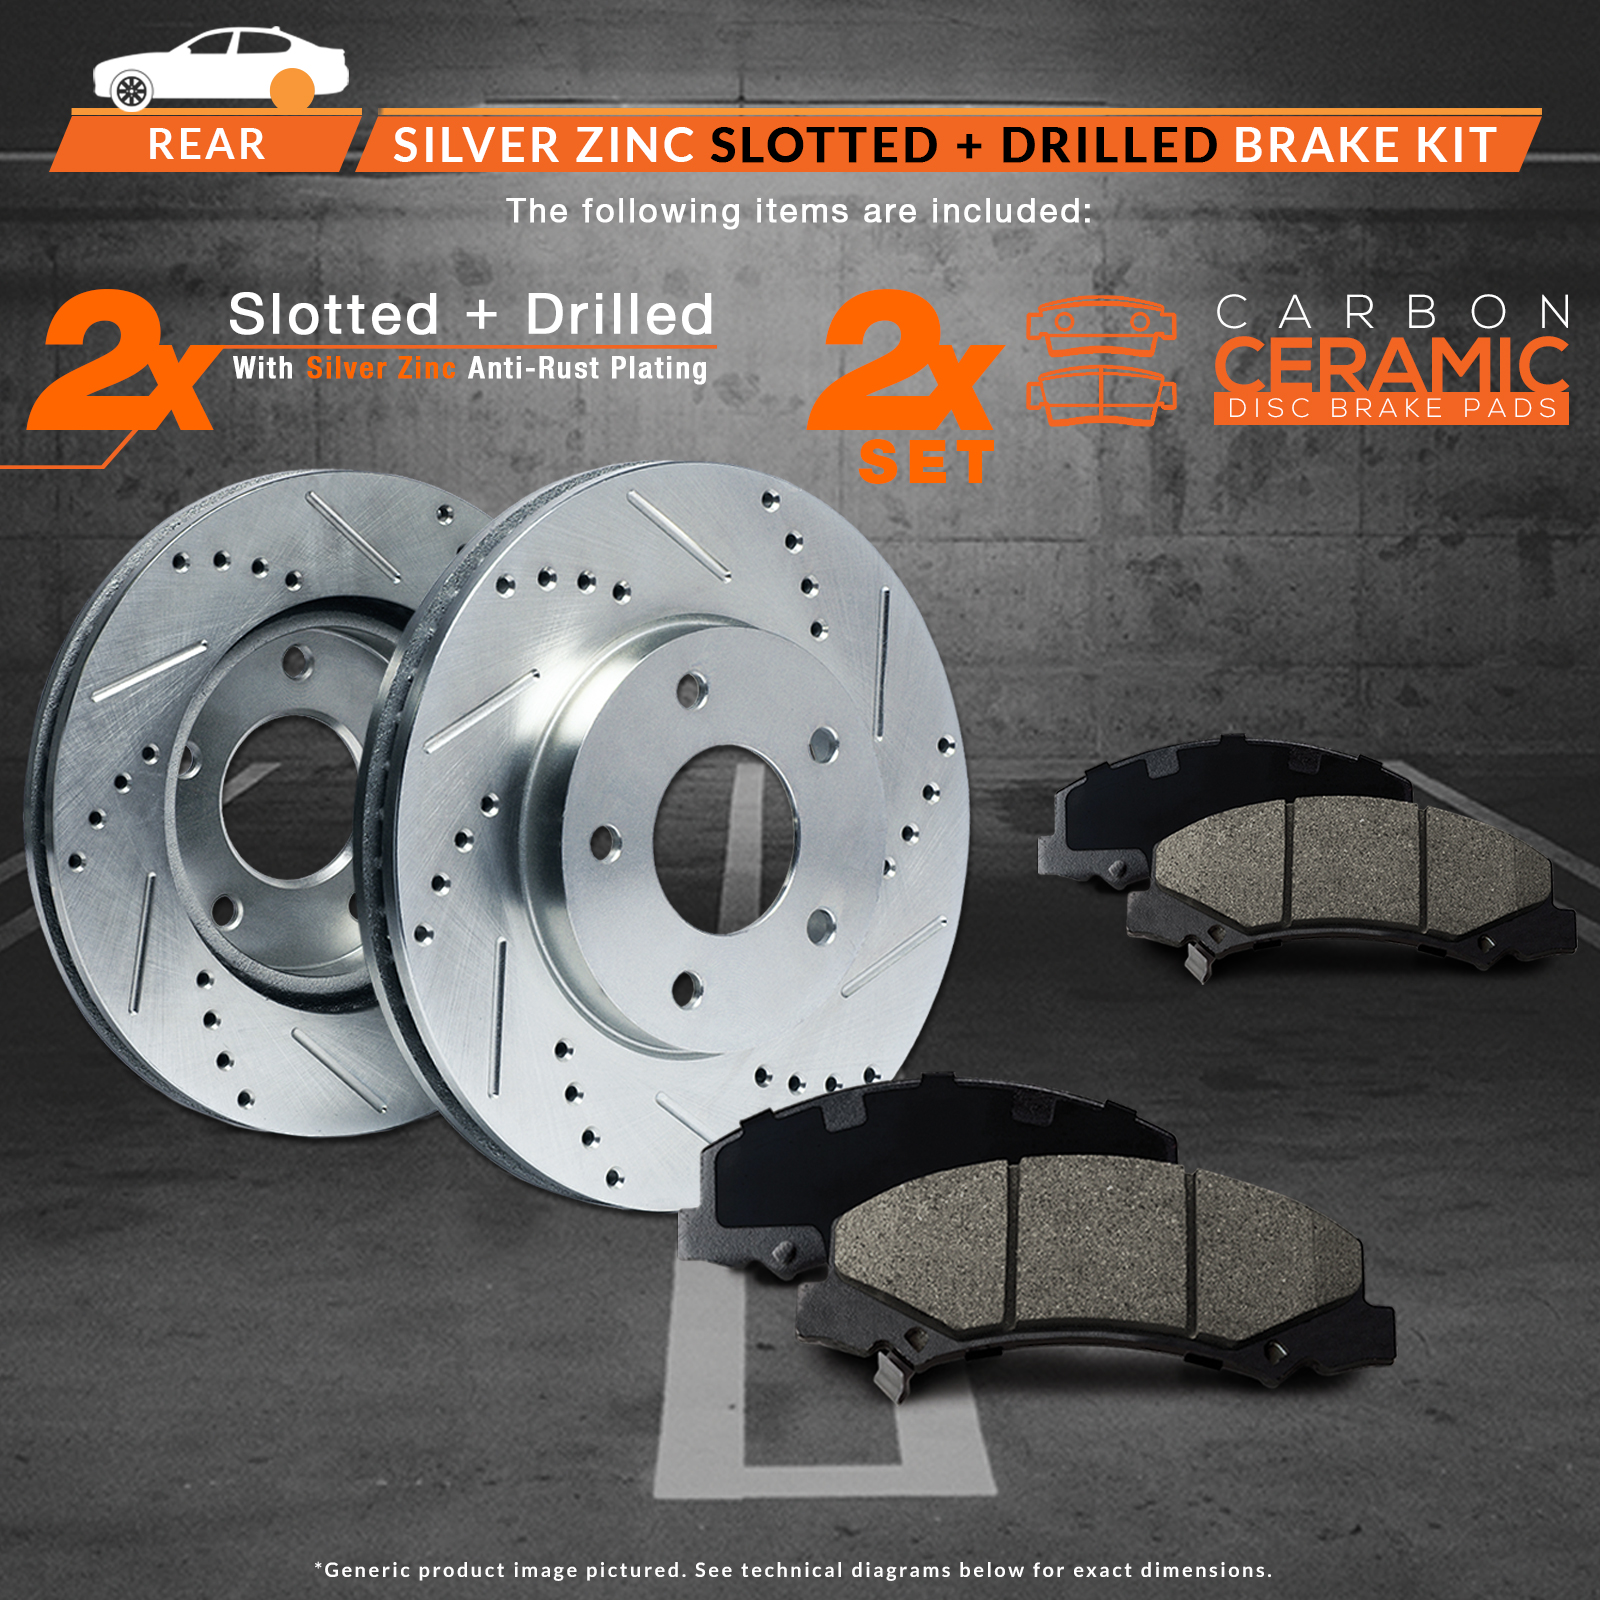 Max Brakes Rear Performance Brake Kit [ Silver Zinc Slotted Drilled Rotors + Ceramic Pads ] KT084712 | Fits: 2014 14 2015 15 Toyota Land Cruiser - image 6 de 8